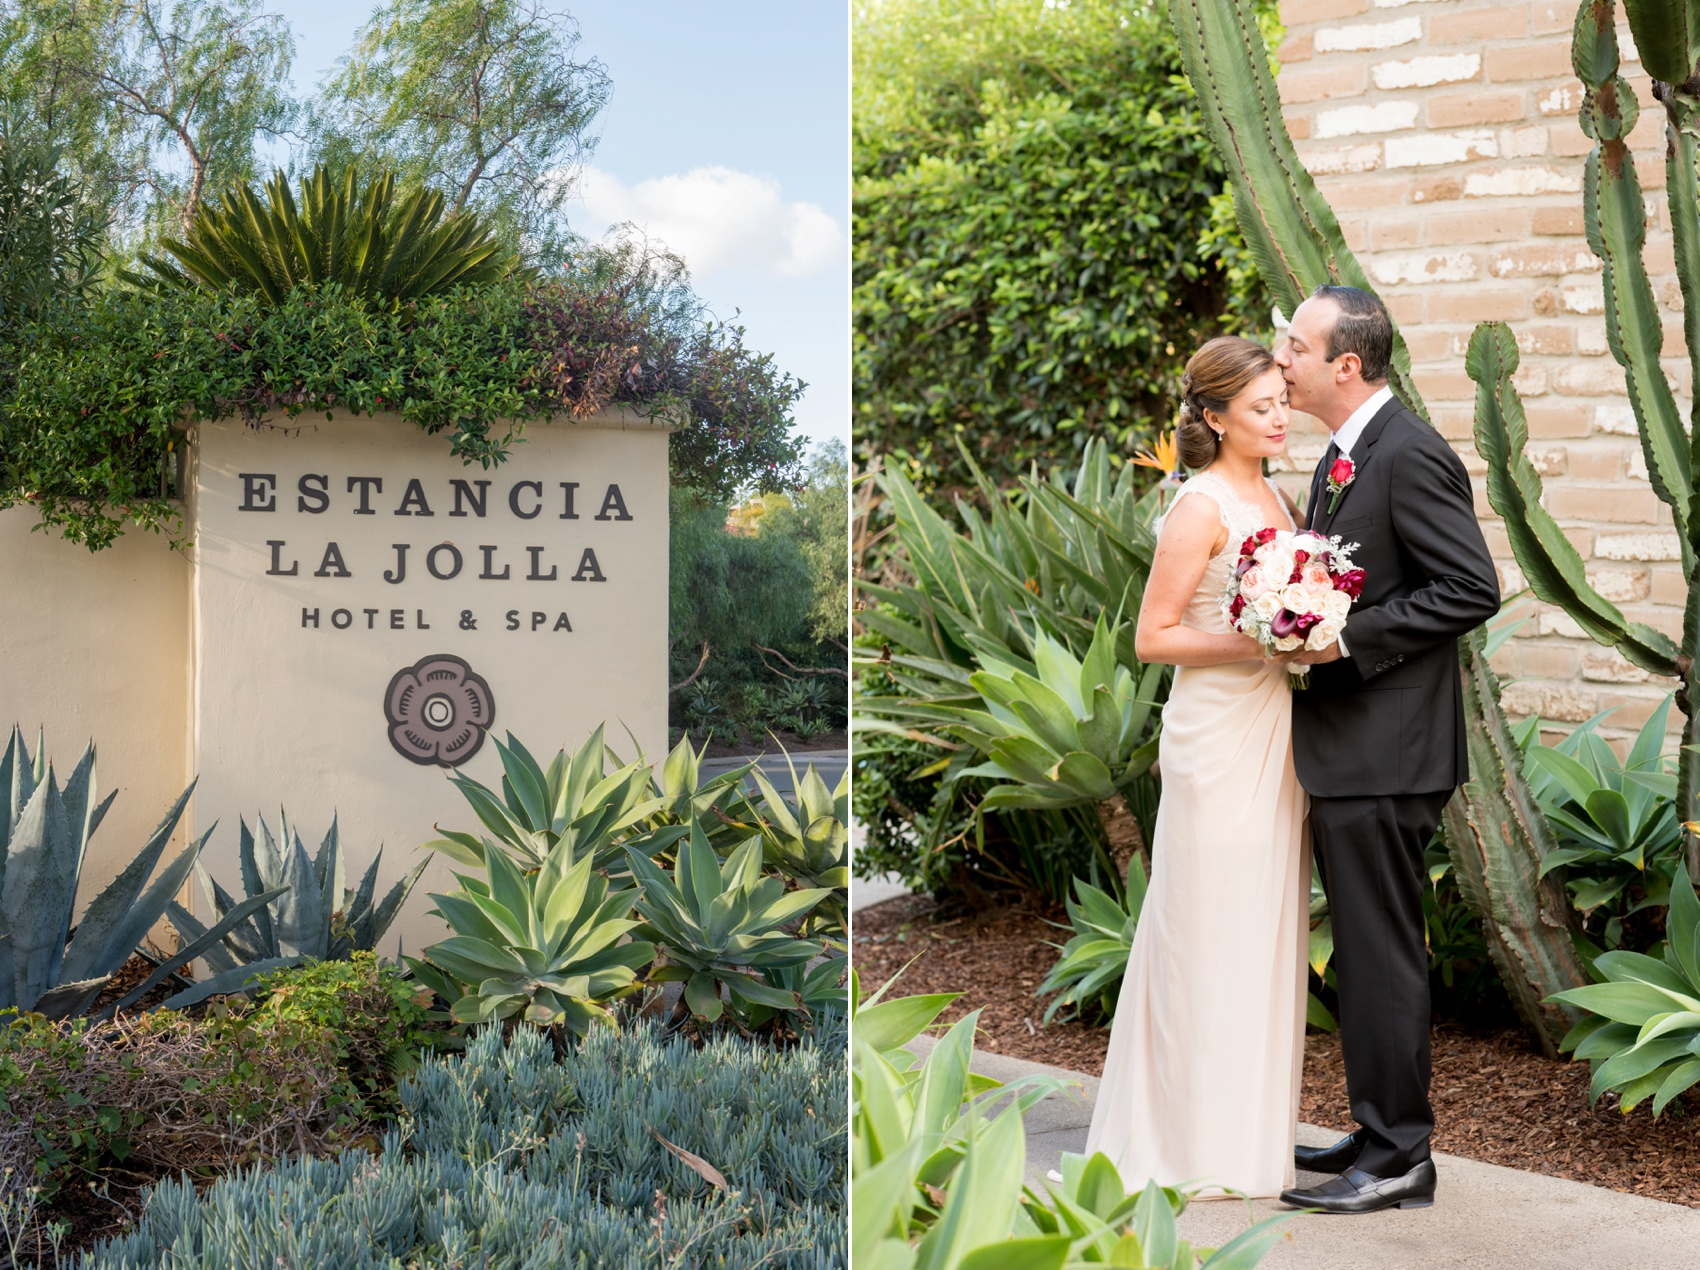 Estancia La Jolla wedding photography by Mikkel Paige Photography. Tropical wedding, California coast.